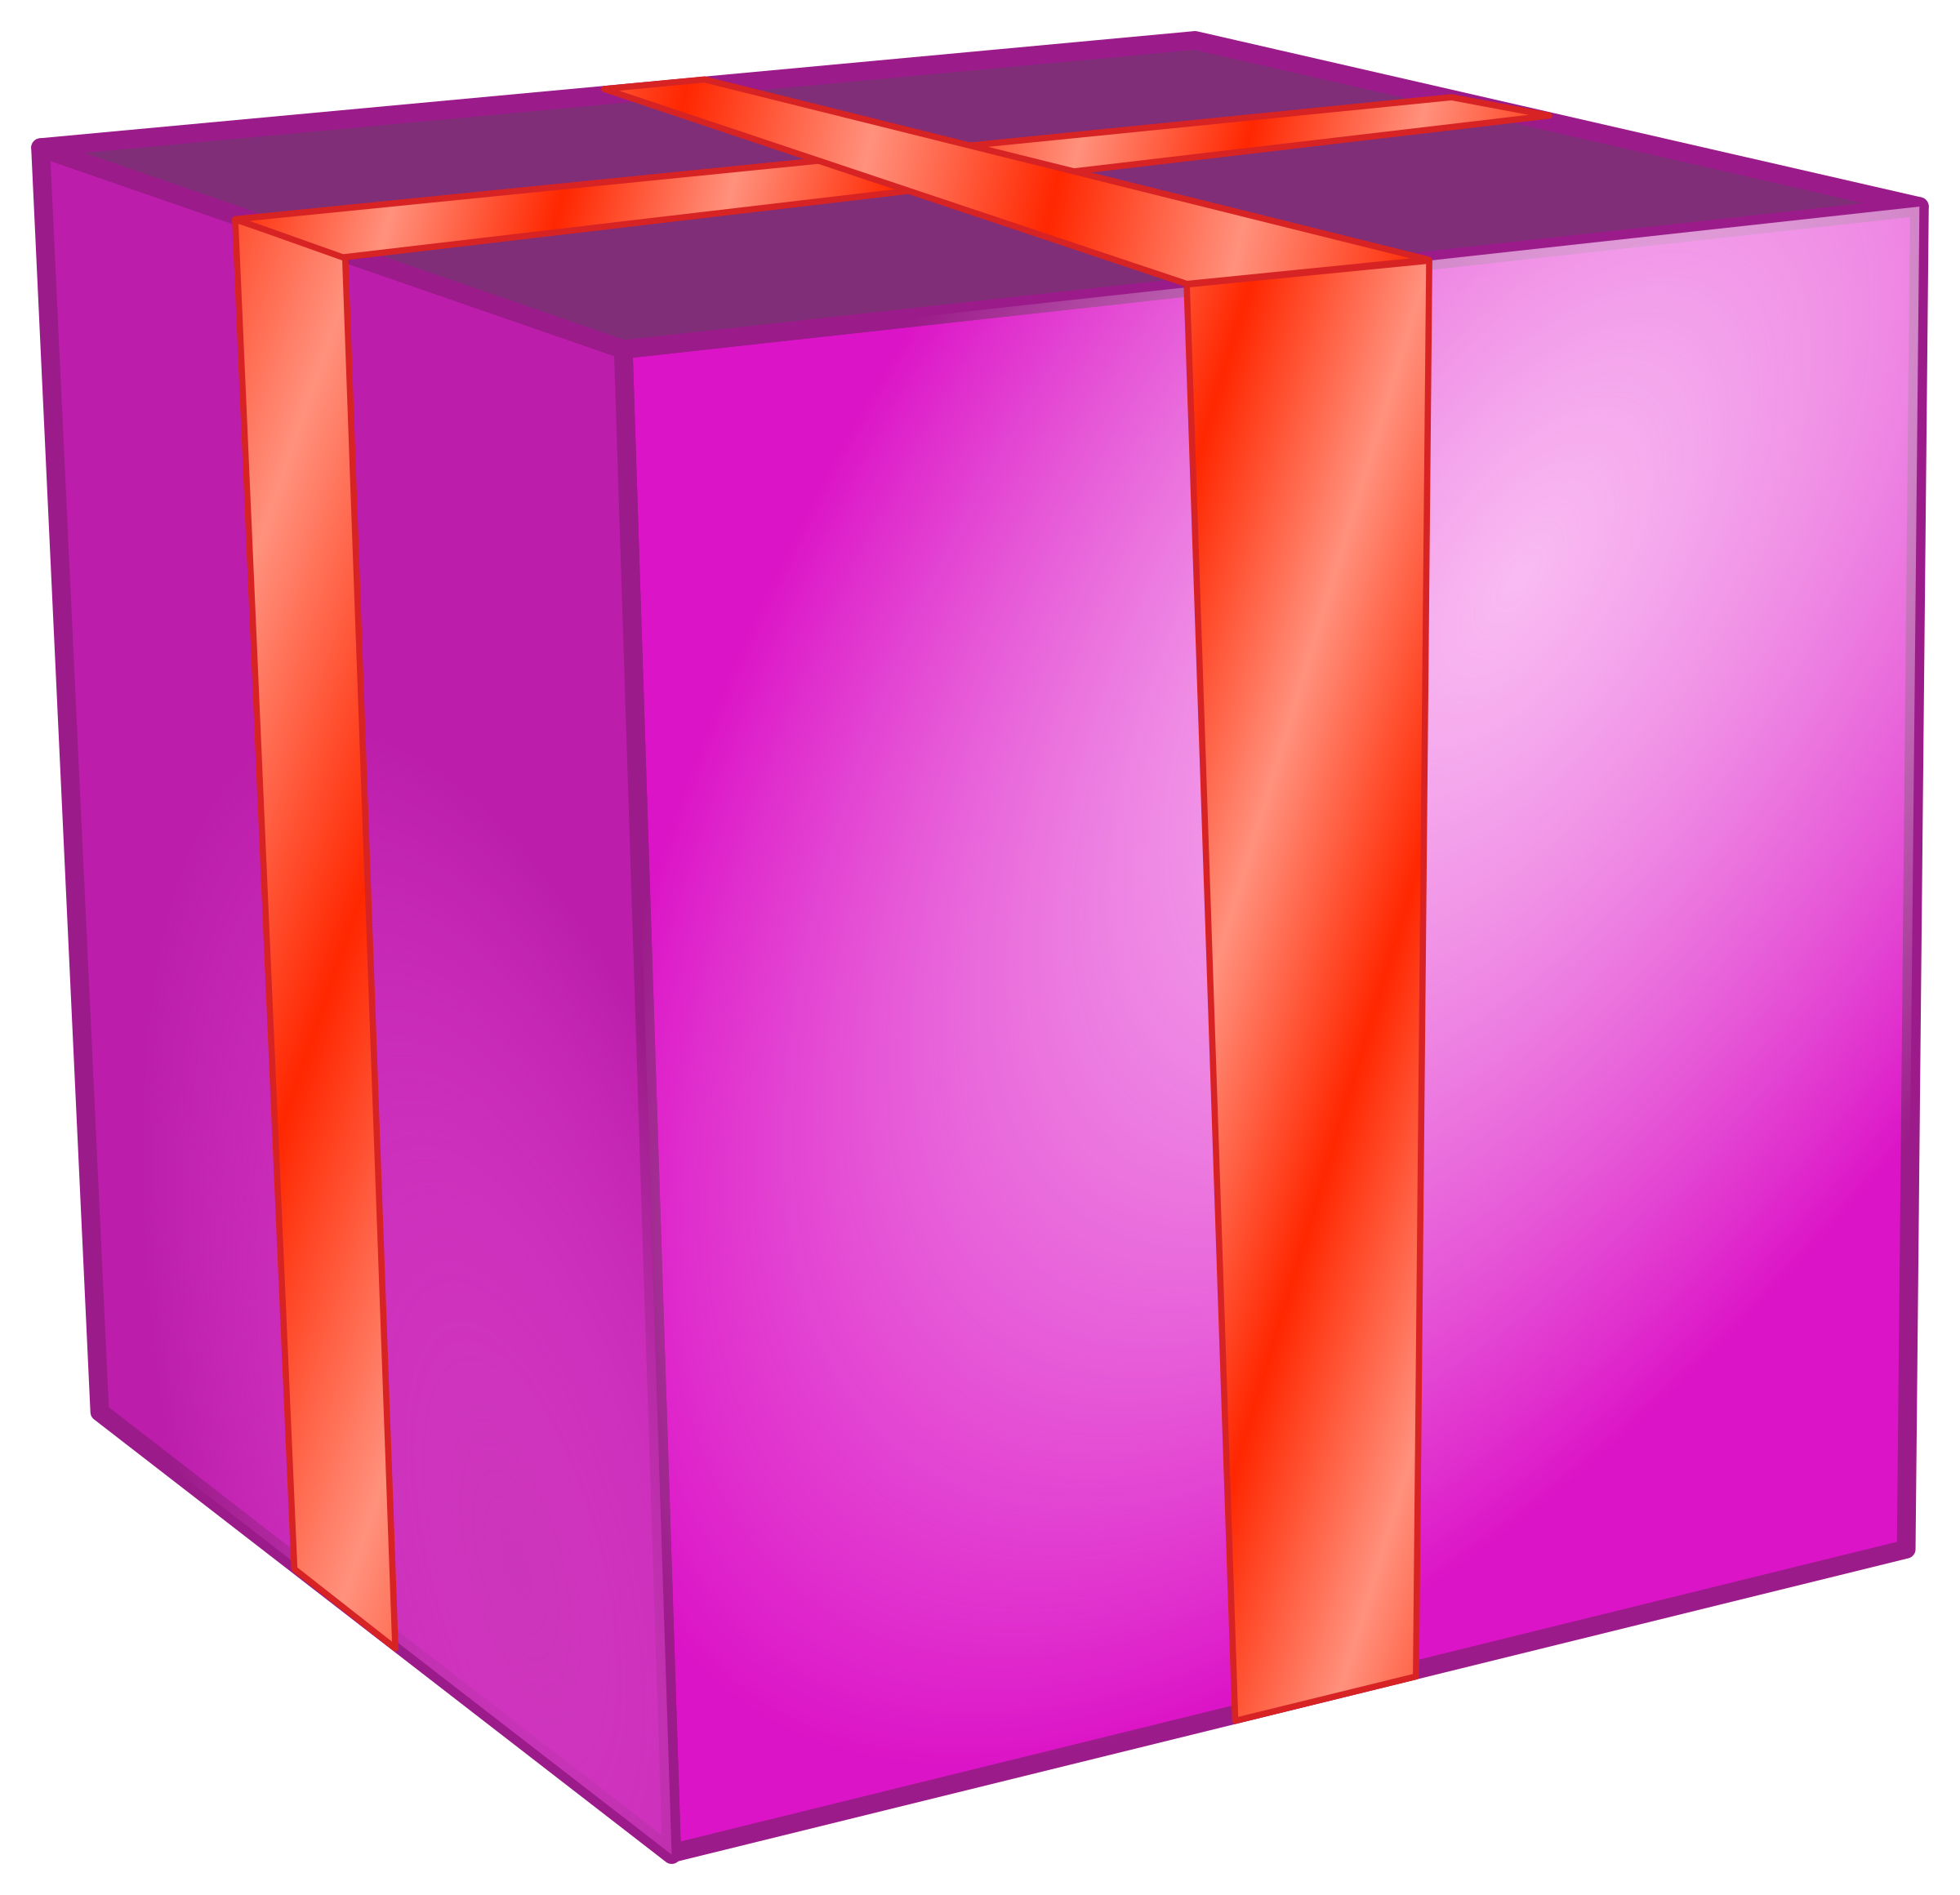 Box big image png. Square clipart square gift